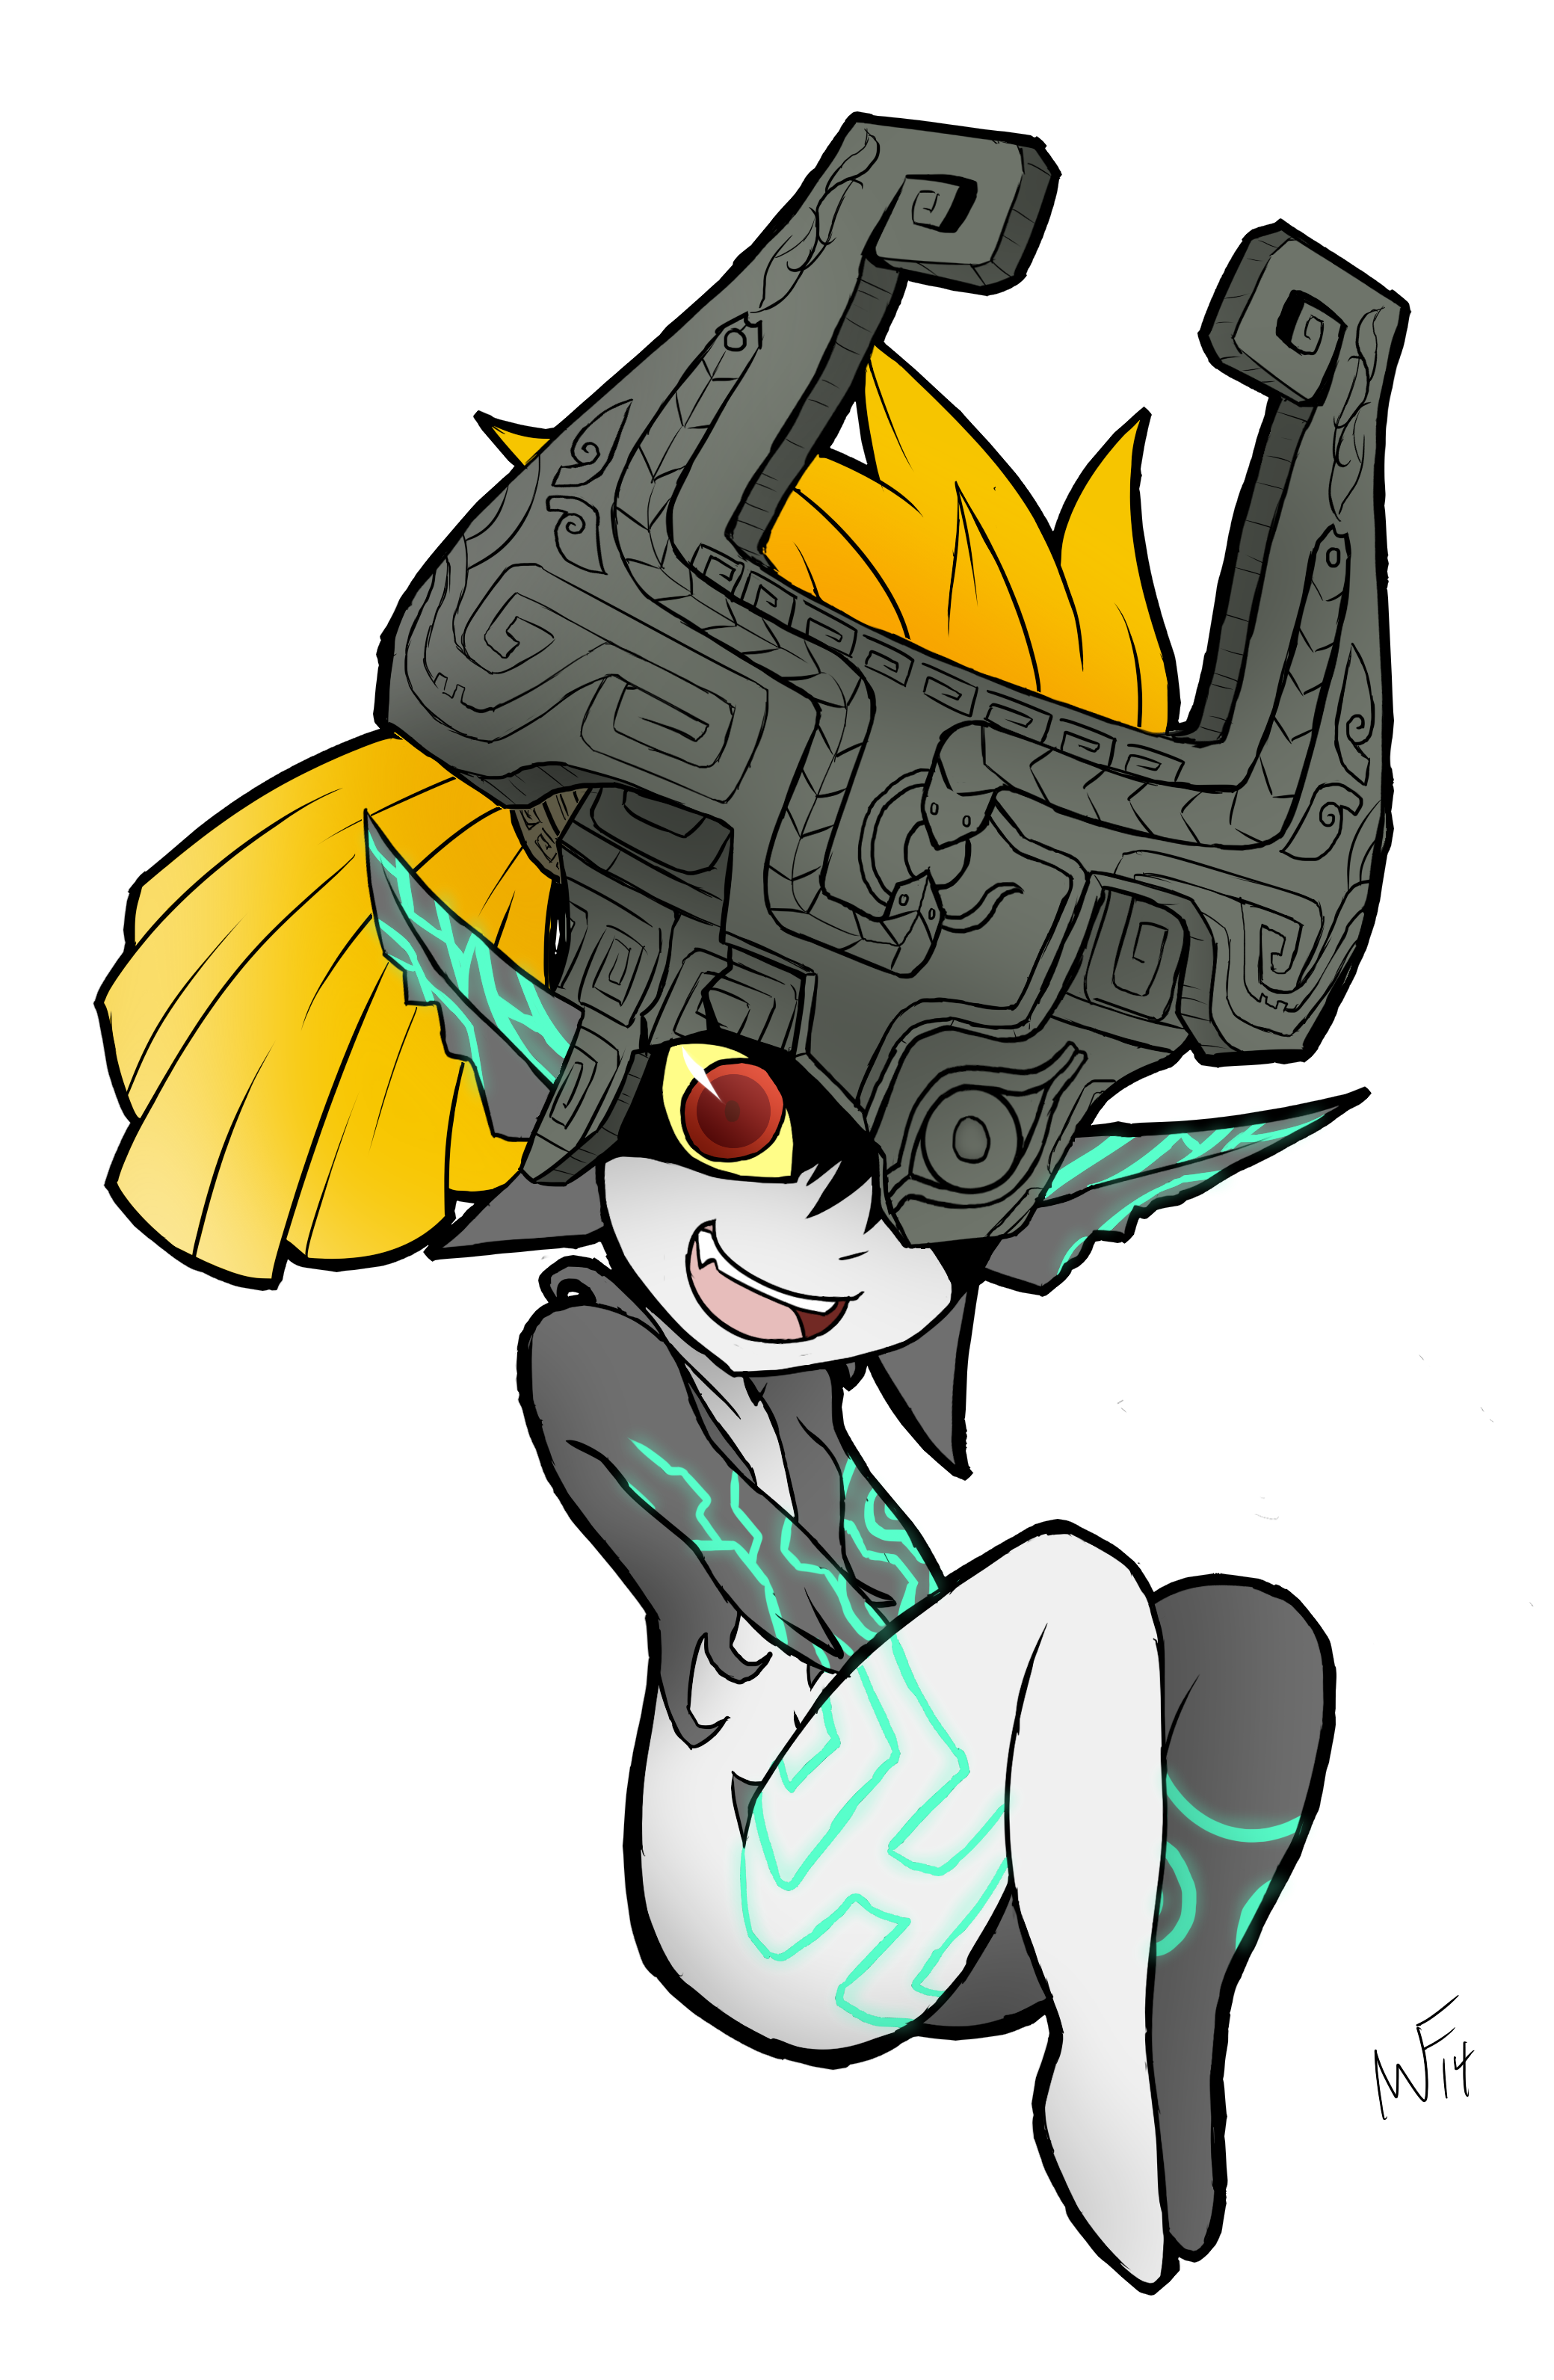 Midna drawing. E absurd res alpha